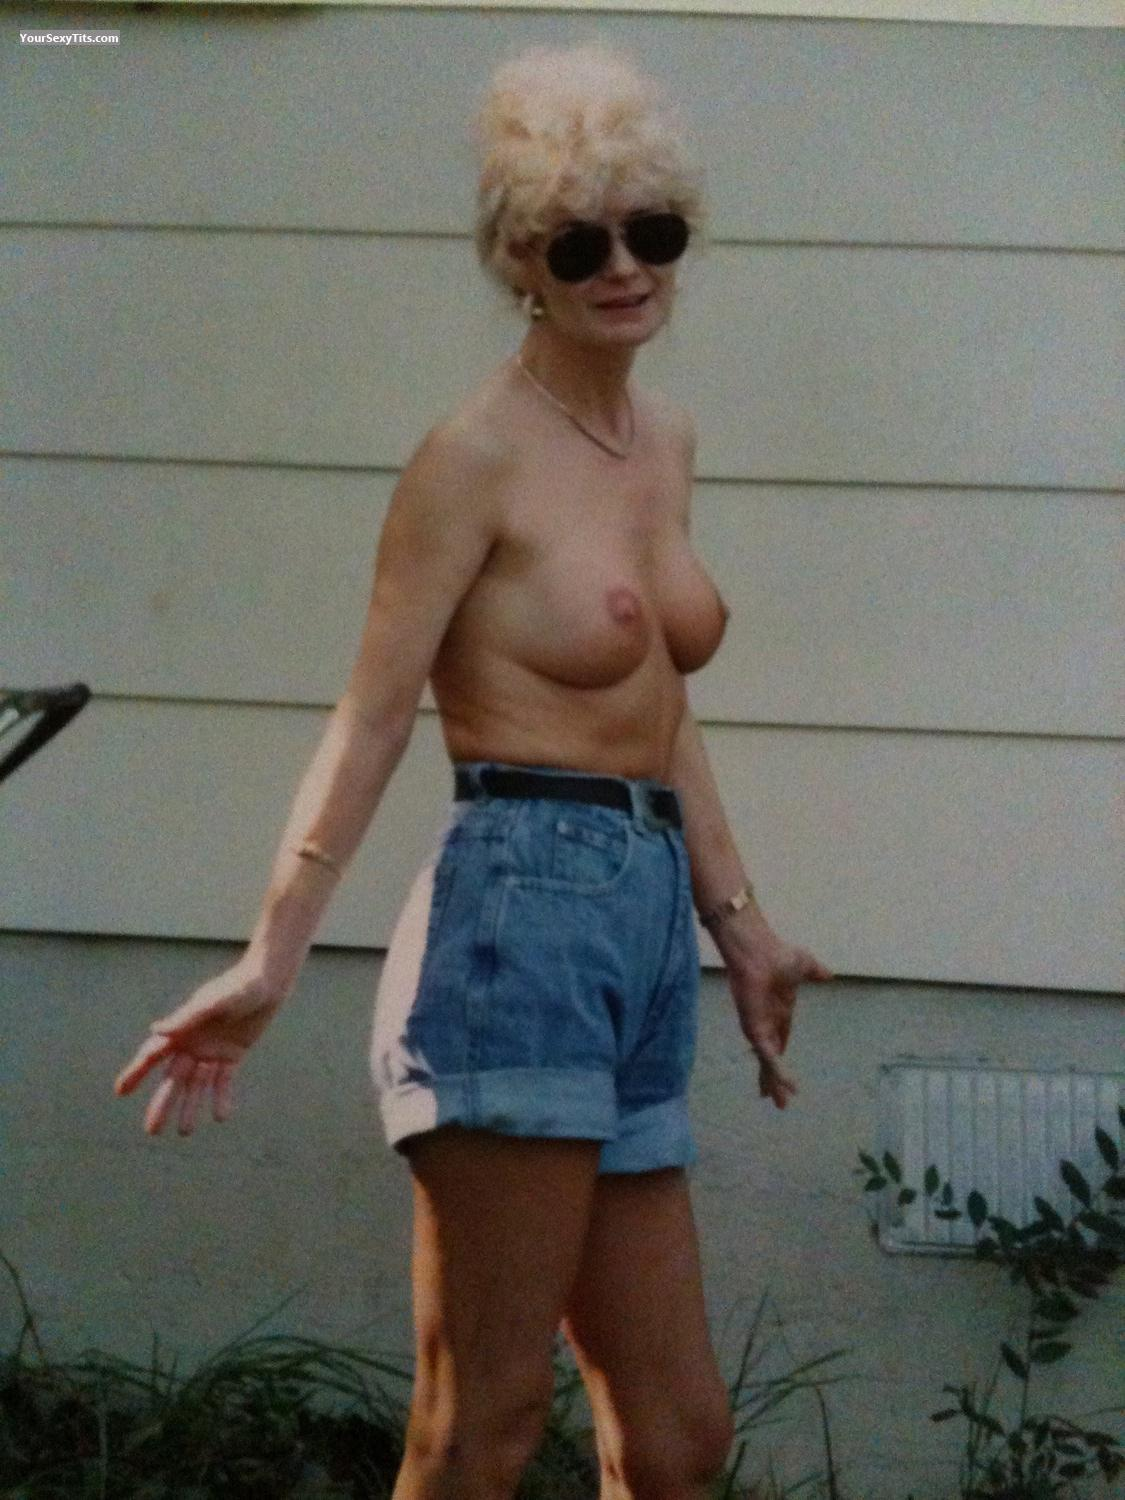 Tit Flash: Medium Tits By IPhone - Topless Liz In Dallas from United States